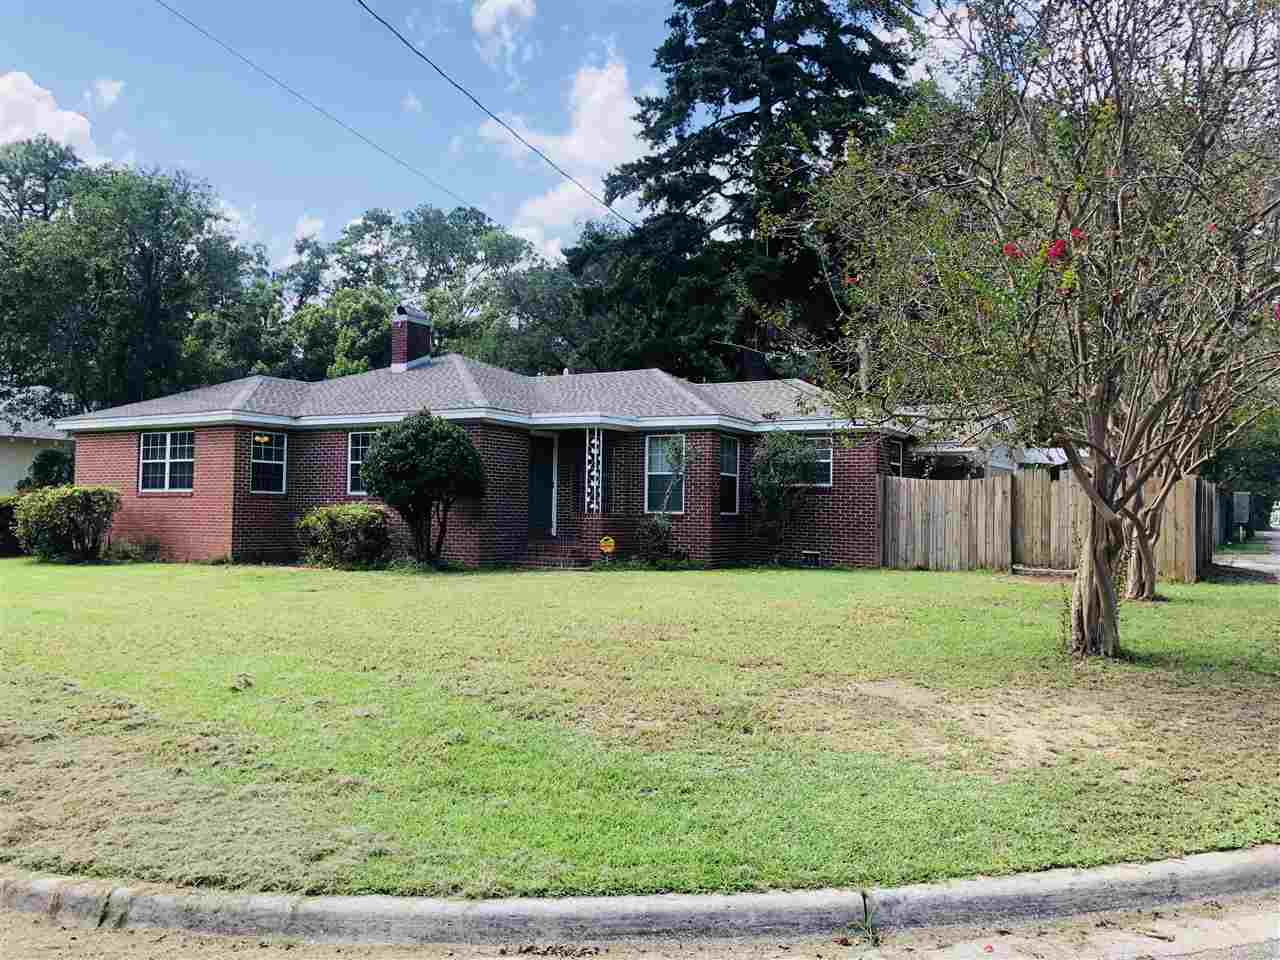 1716 Monticello, TALLAHASSEE, Florida 32303, 4 Bedrooms Bedrooms, ,3 BathroomsBathrooms,Single Family,For Sale,1716 Monticello,1,323495